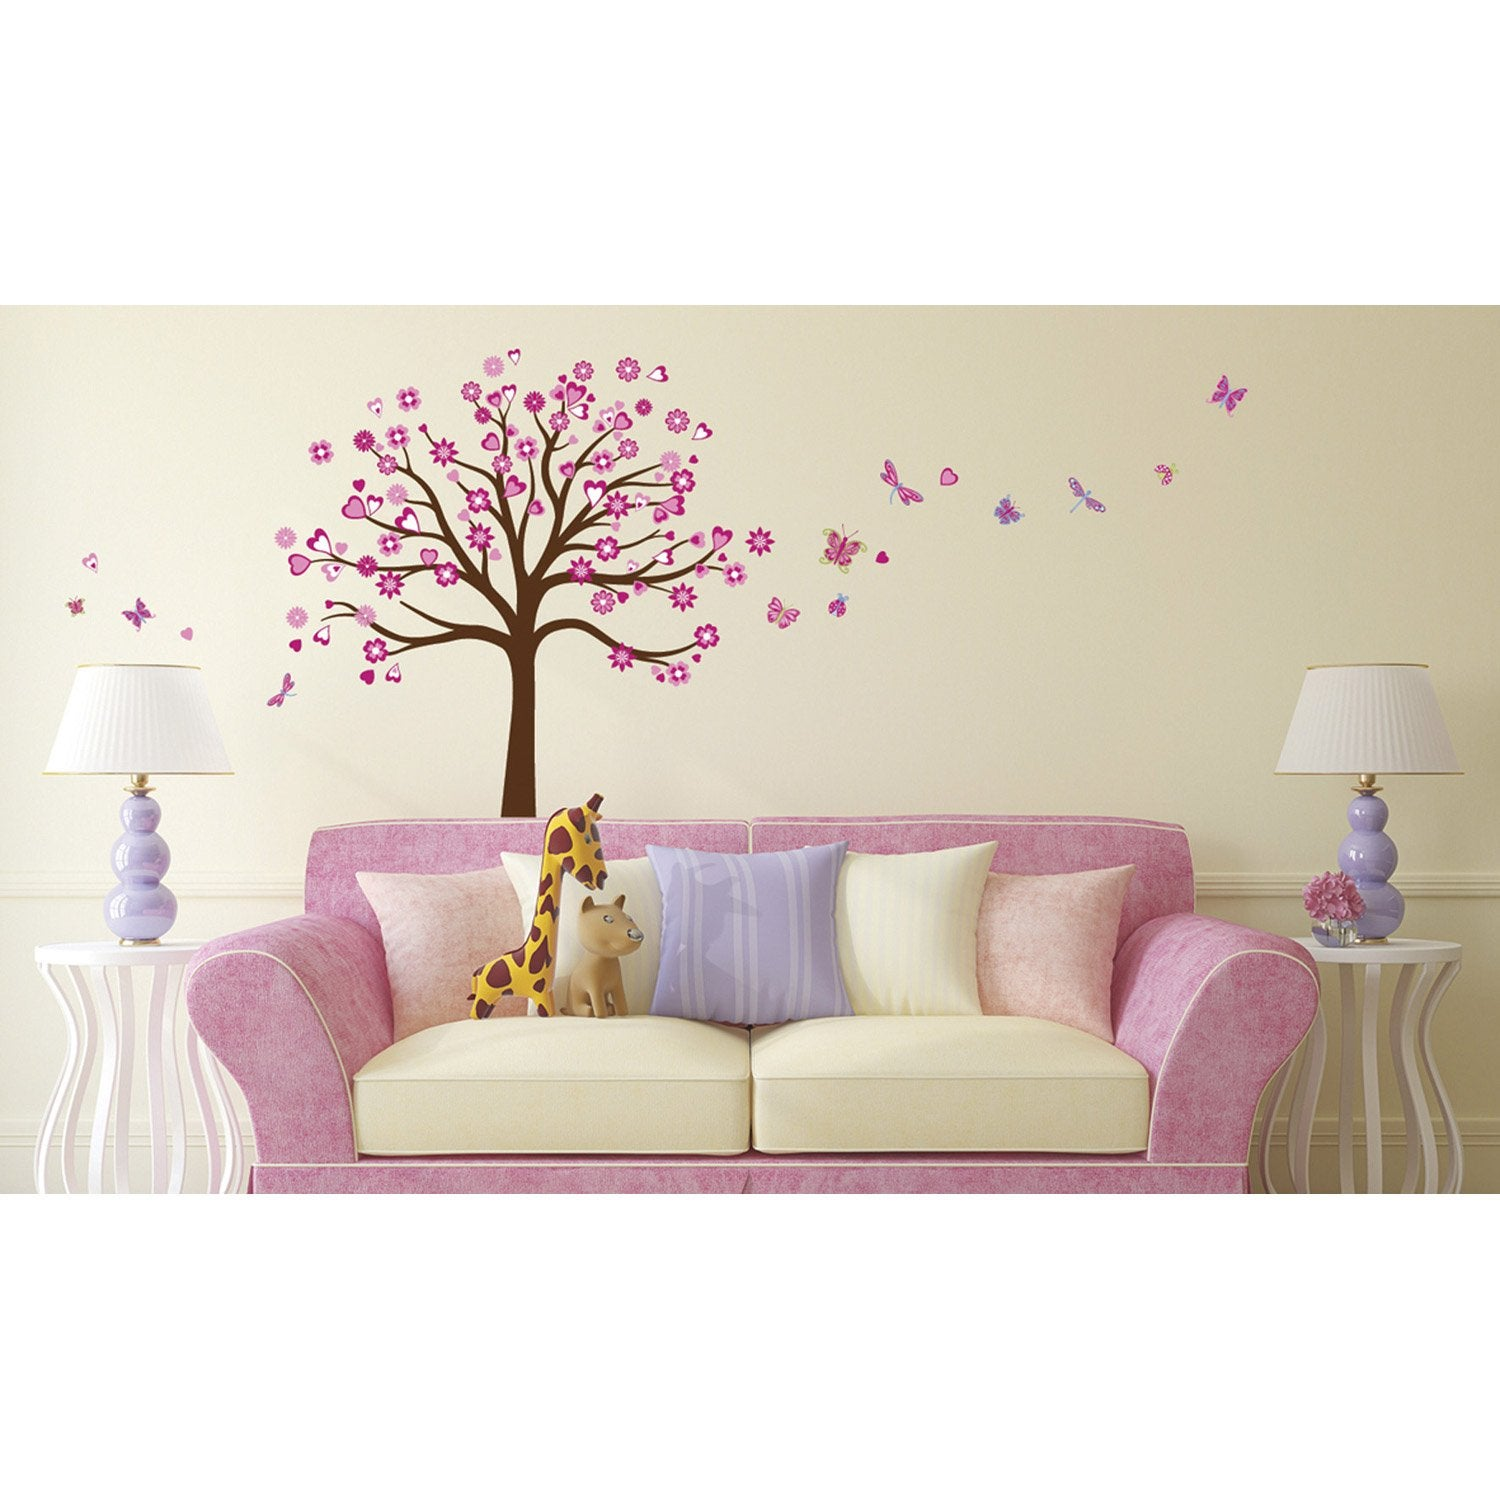 sticker arbre c ur 50 cm x 70 cm leroy merlin. Black Bedroom Furniture Sets. Home Design Ideas